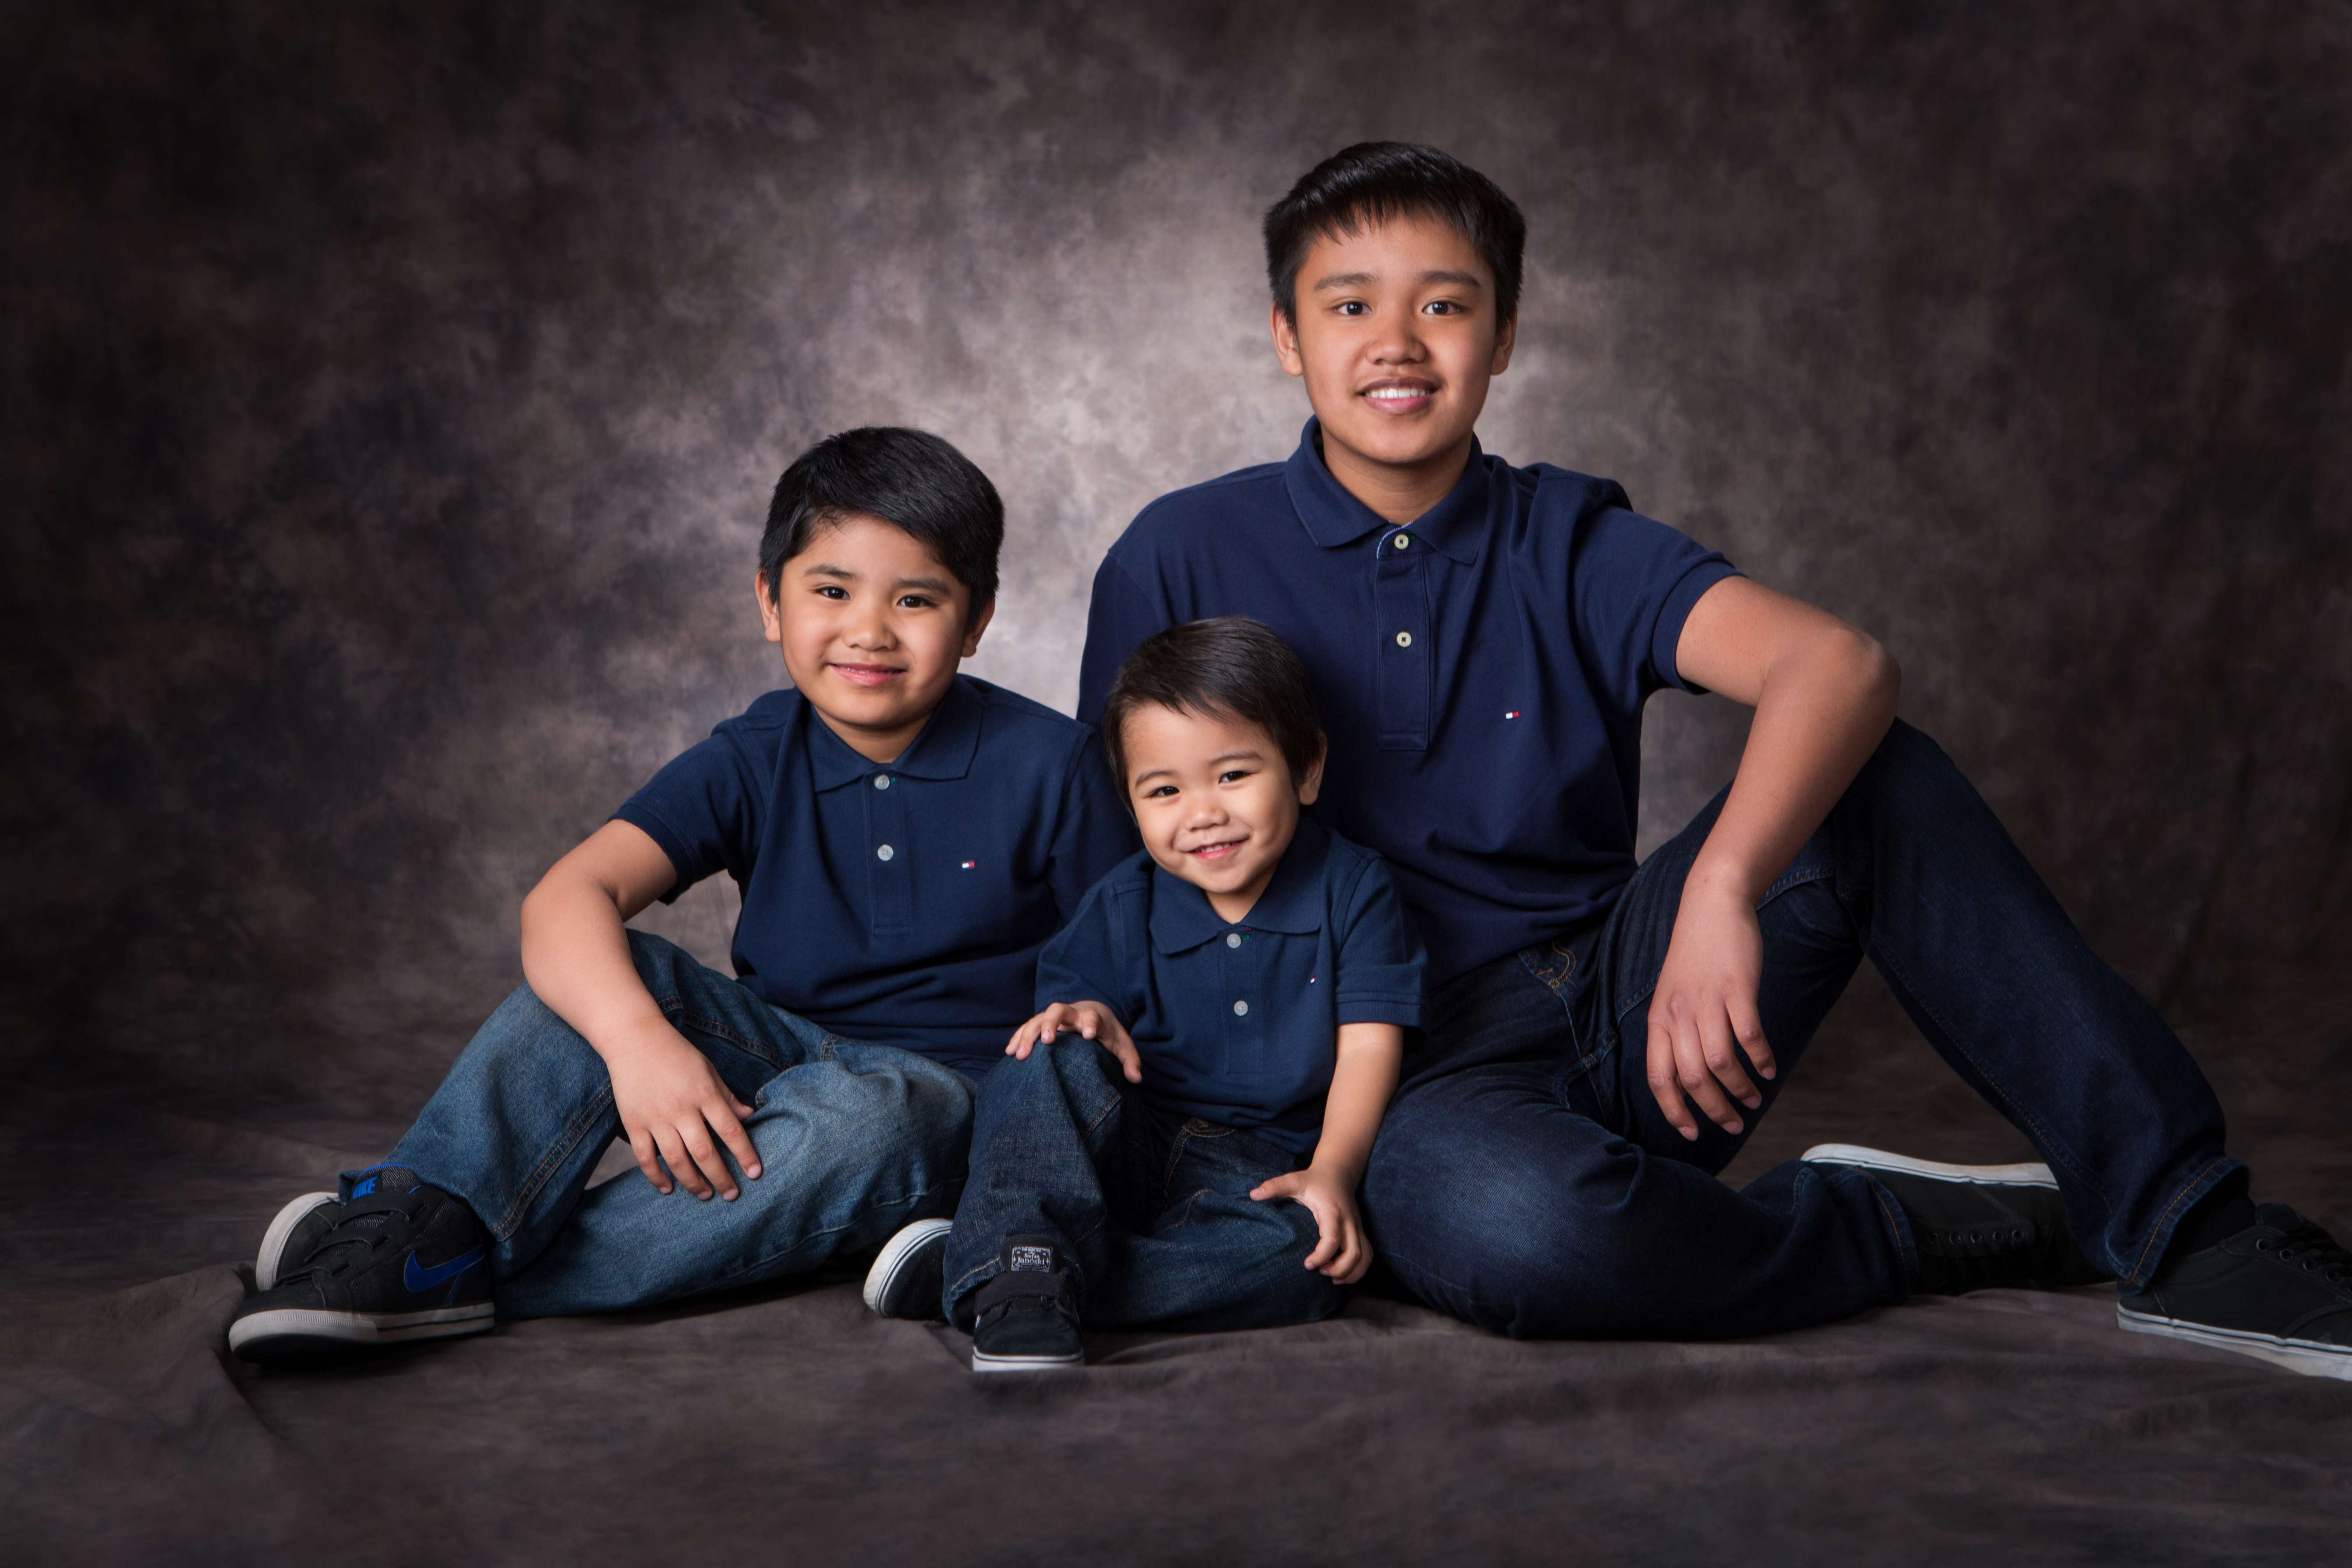 Three sibling boys in blue shirts sitting together